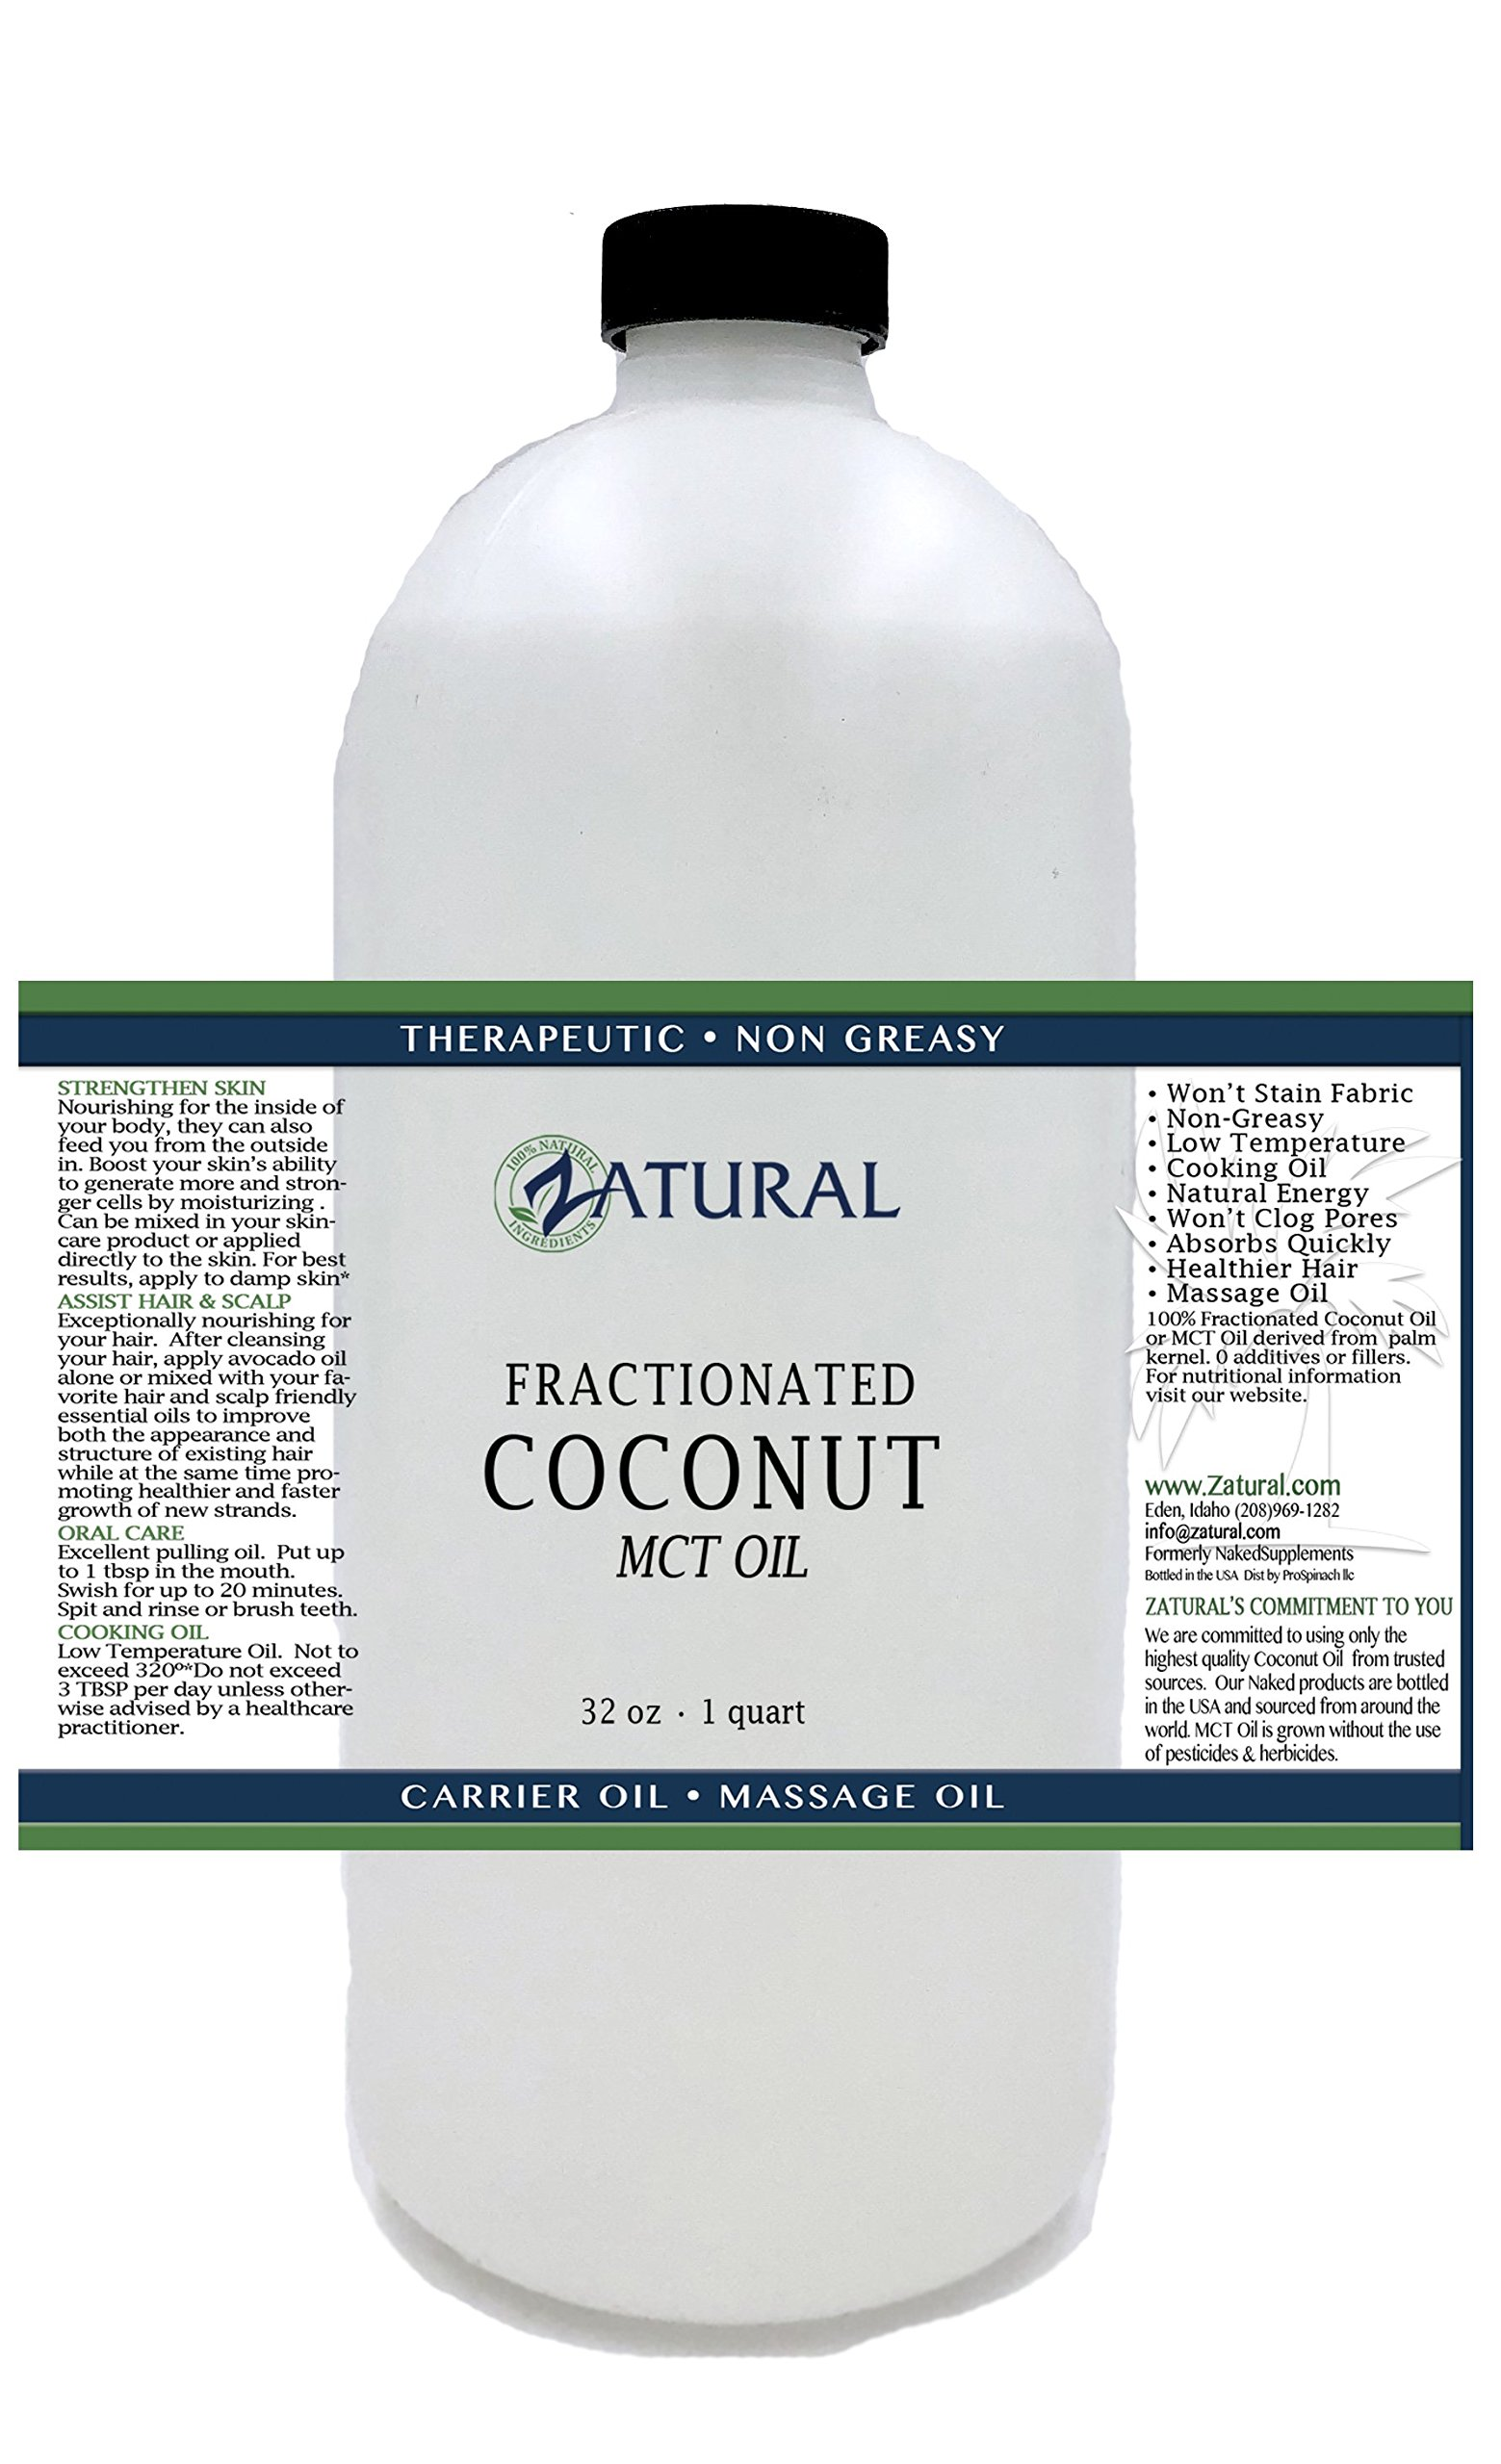 Fractionated Coconut Oil-MCT Oil, 6 Sizes Available, Food and Therapeutic Grade, Carrier Oil, Massage Oil, Hydrating Oil, Hair Oil, 0 Additives, Organic Coconut, Pure Coconut Oil (32 Ounce)